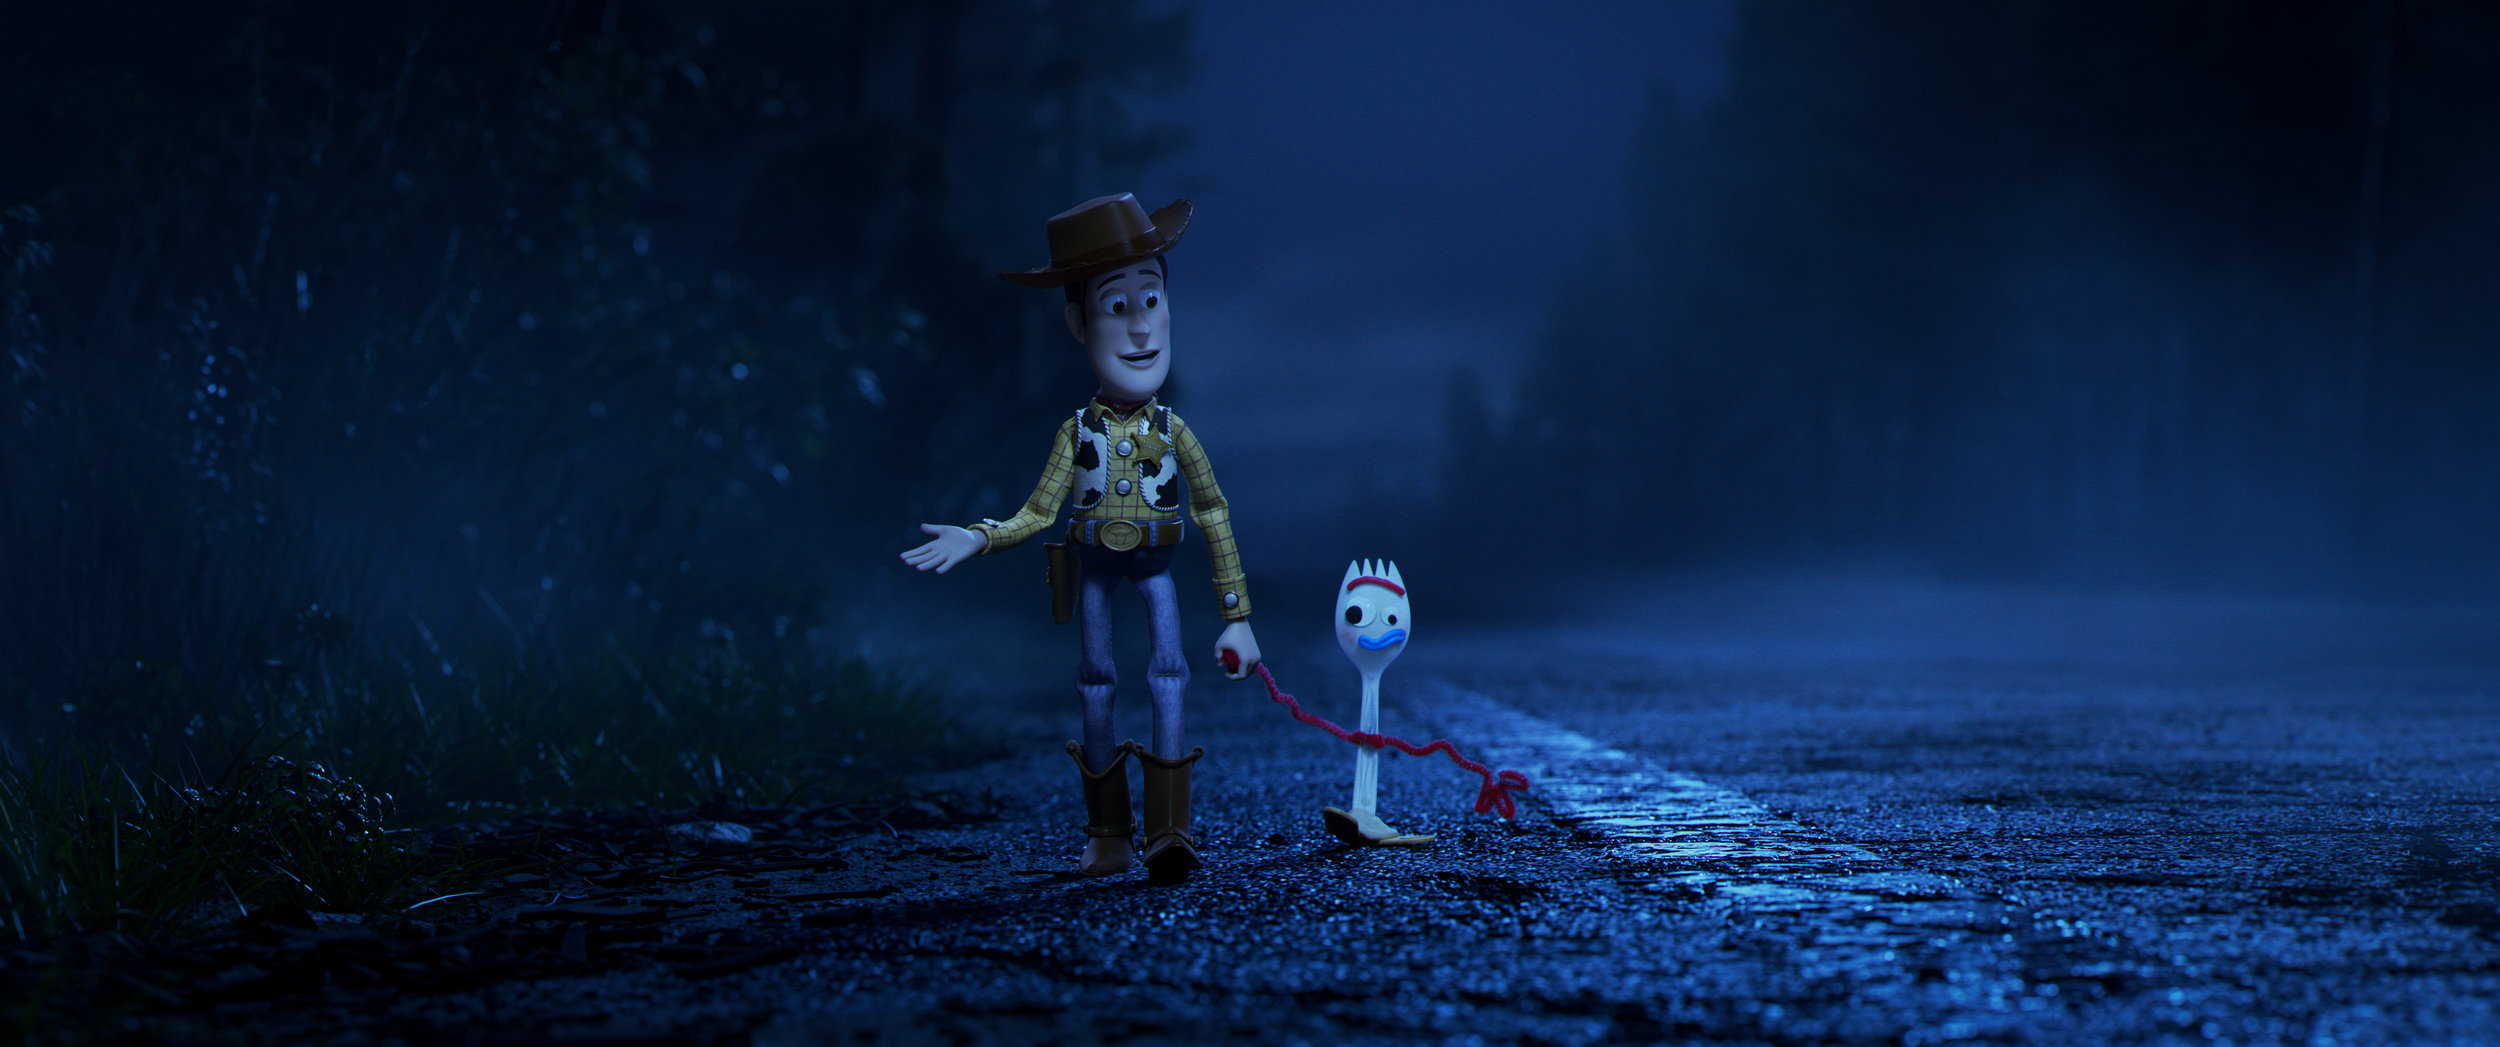 Toy Story 4': The existential journey of Woody and Forky — John